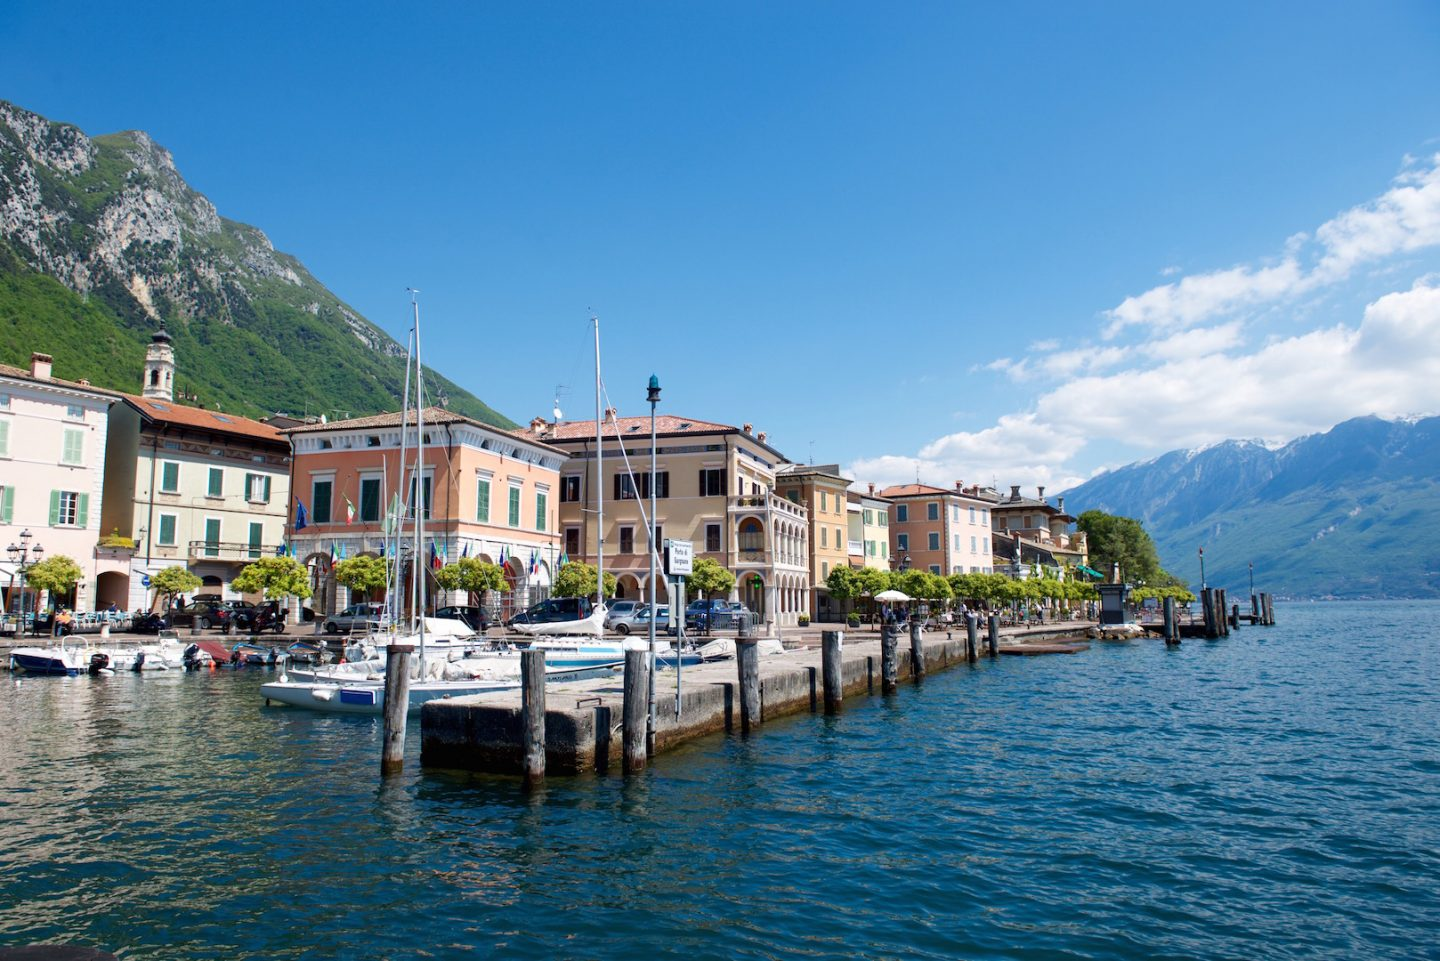 Road trip around Lake Garda